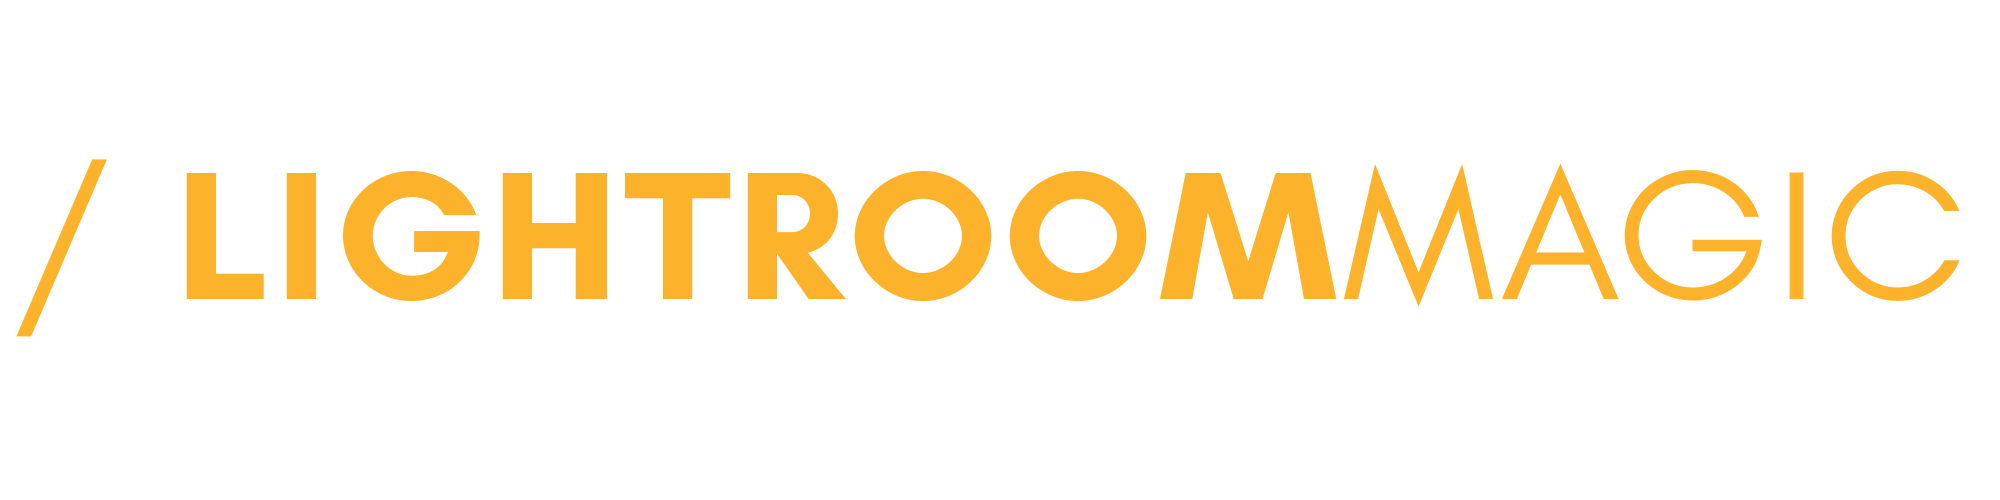 LM-logo-yellow text.png